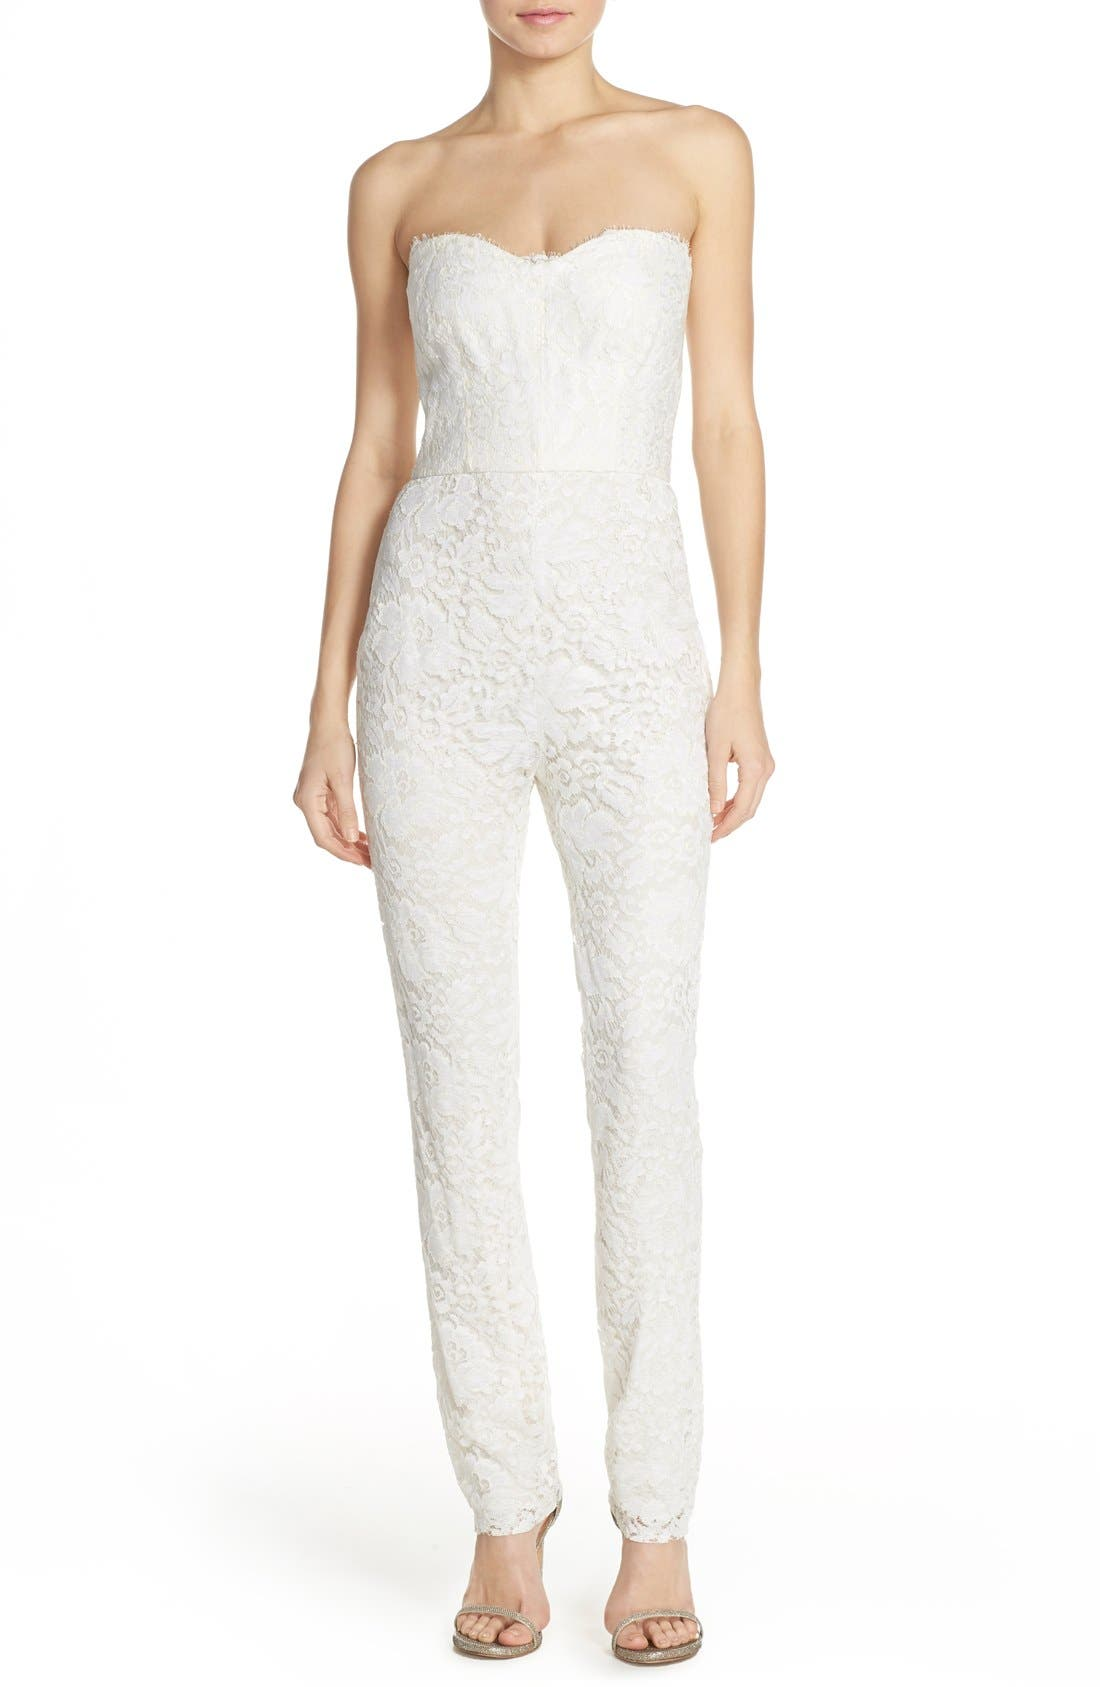 Monique Lhuillier Ready to Wed Strapless Chantilly Lace Jumpsuit,                             Main thumbnail 1, color,                             Silk White